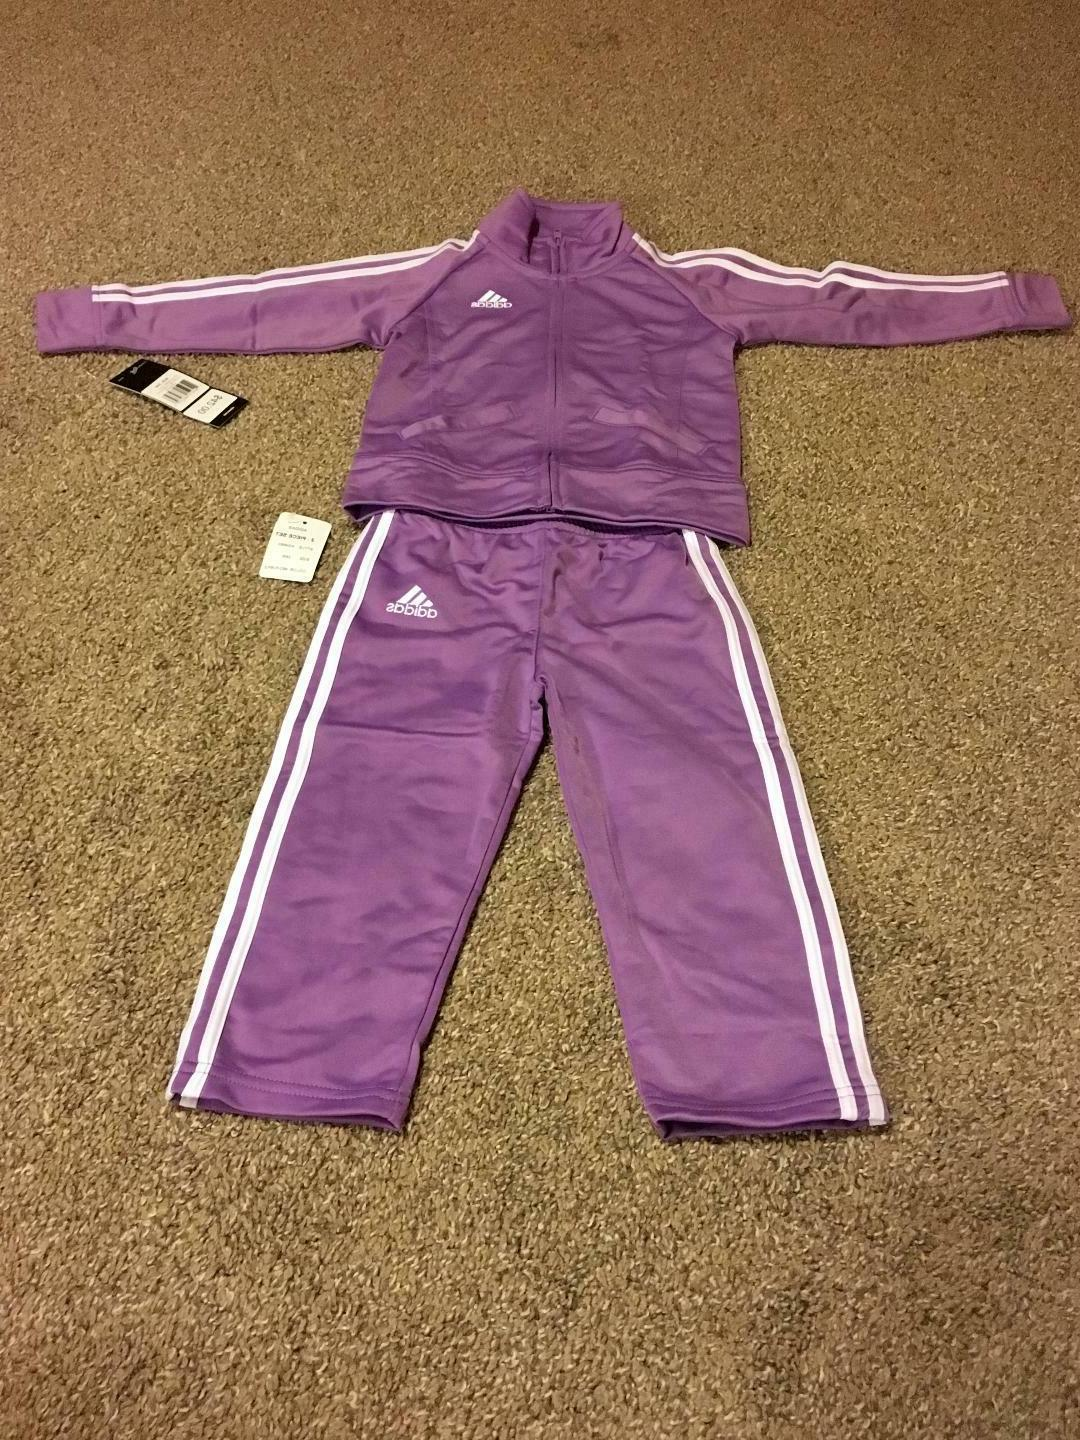 new baby girl track suit warm up